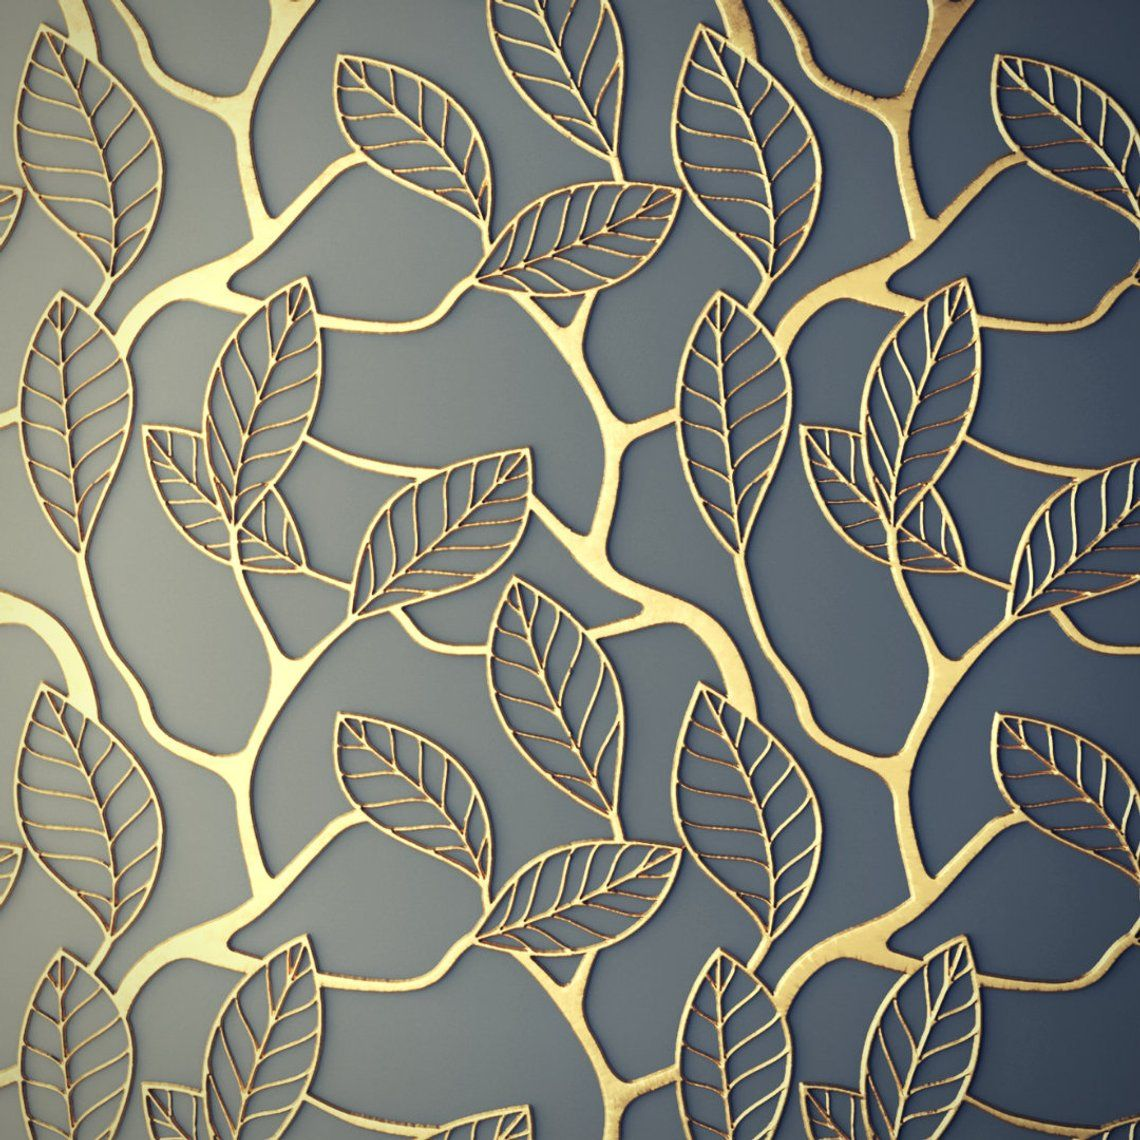 Printmyspace Vintage Gold And Grey Lattice Wallpaper Self